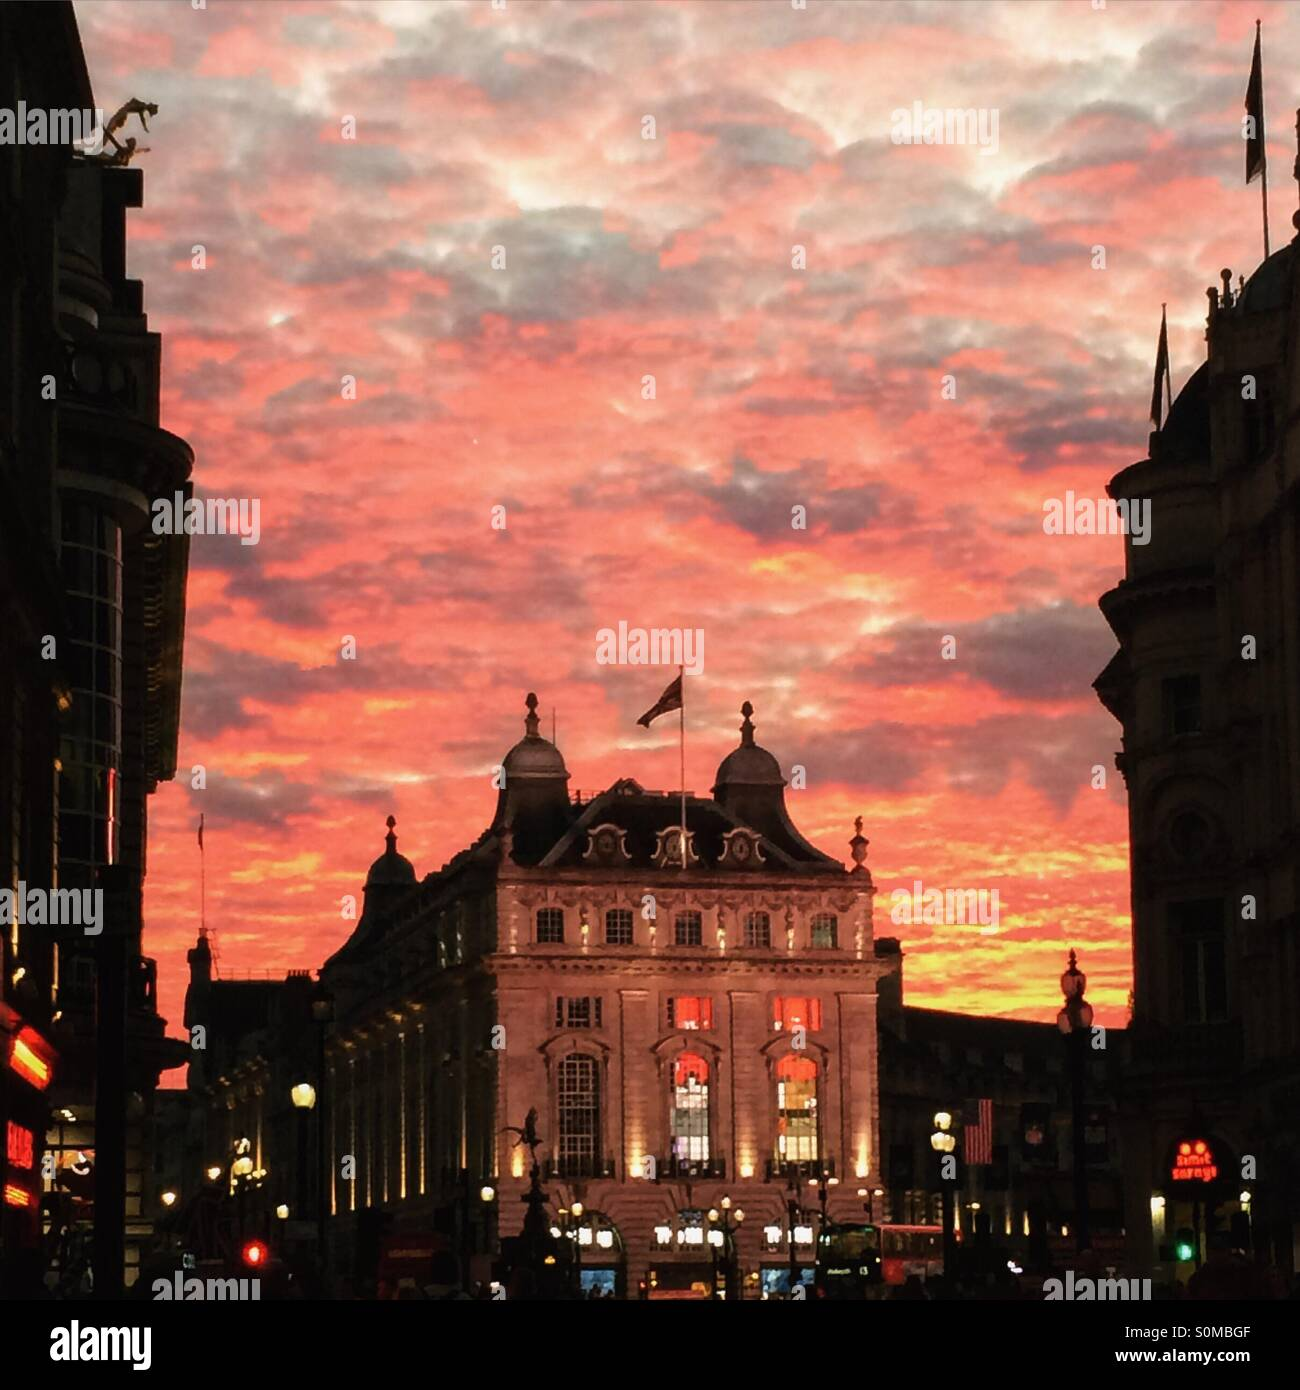 Sunset in Sunday afternoon, 11 October 2015, Picadilly circus, London UK - Stock Image